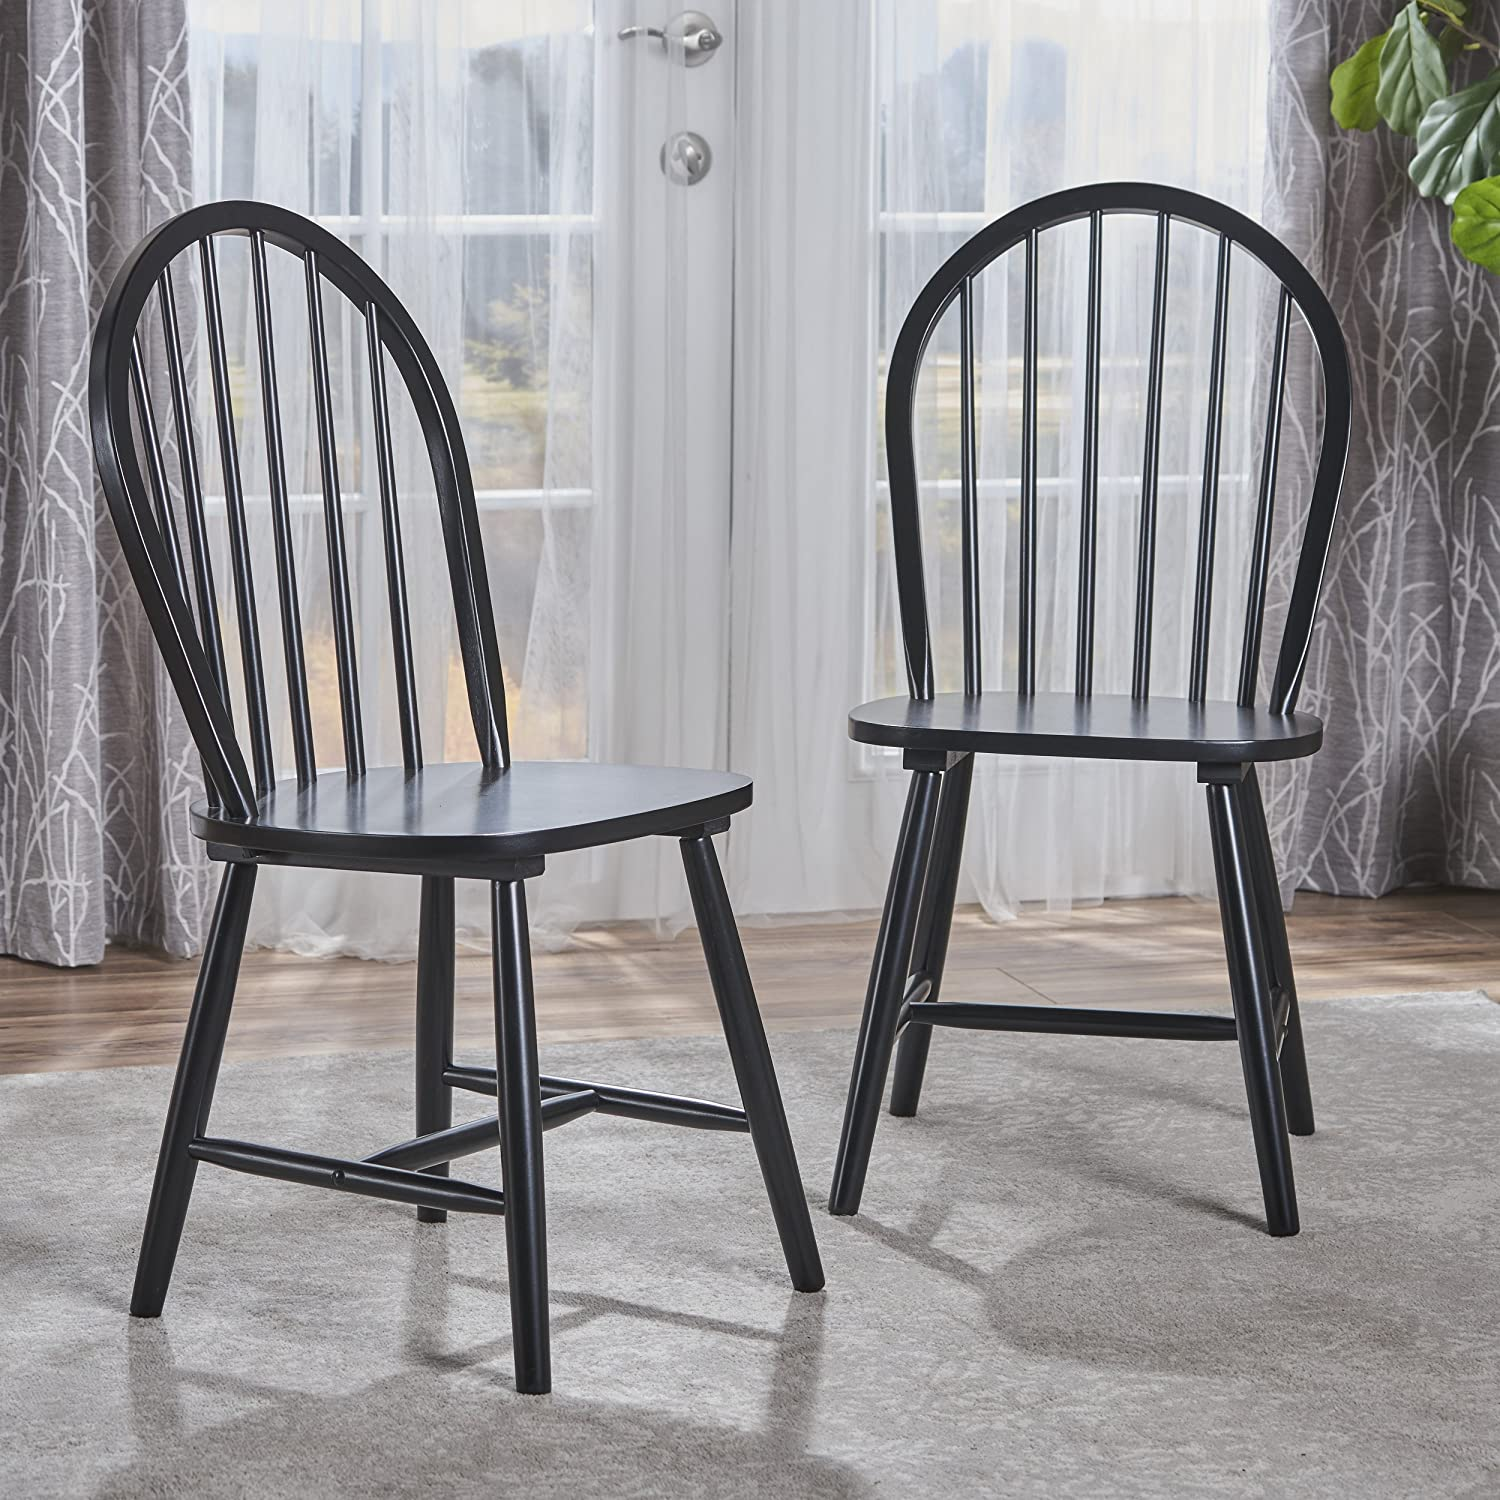 Christopher Knight Home Declan Dining Chairs (Set Of 2), Black